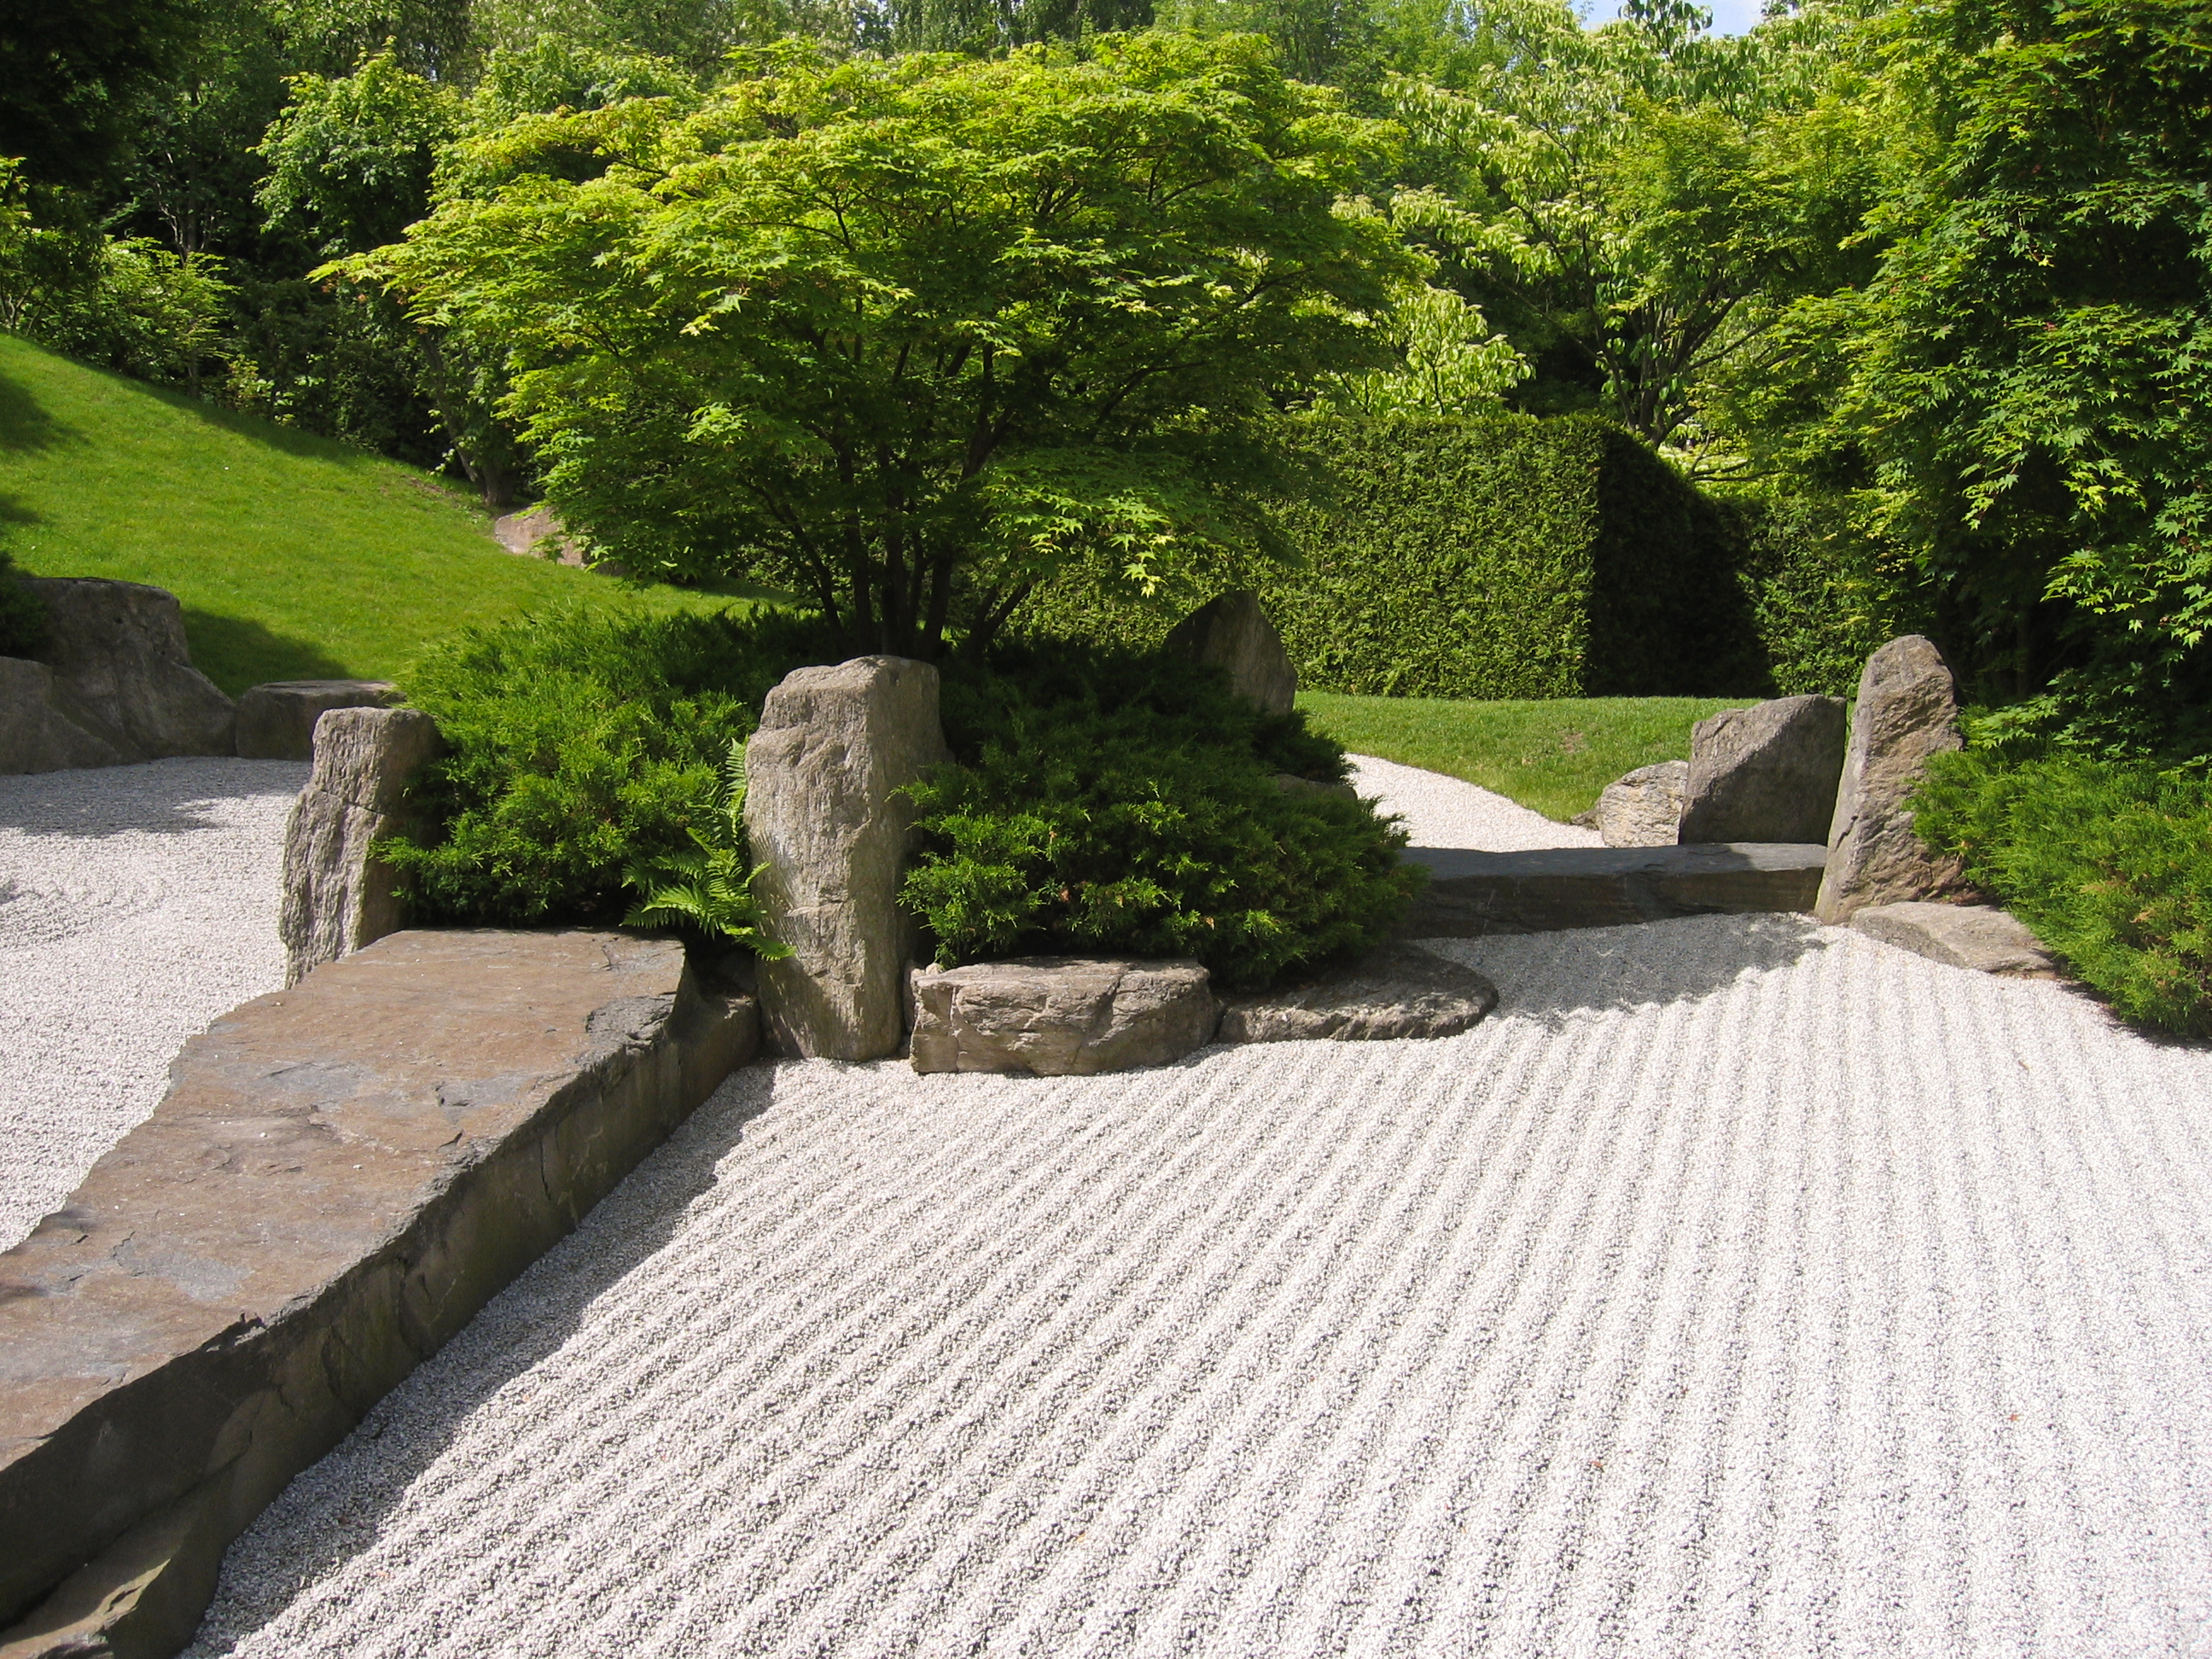 Garden design common garden stylesse landscape for Japanese landscape design